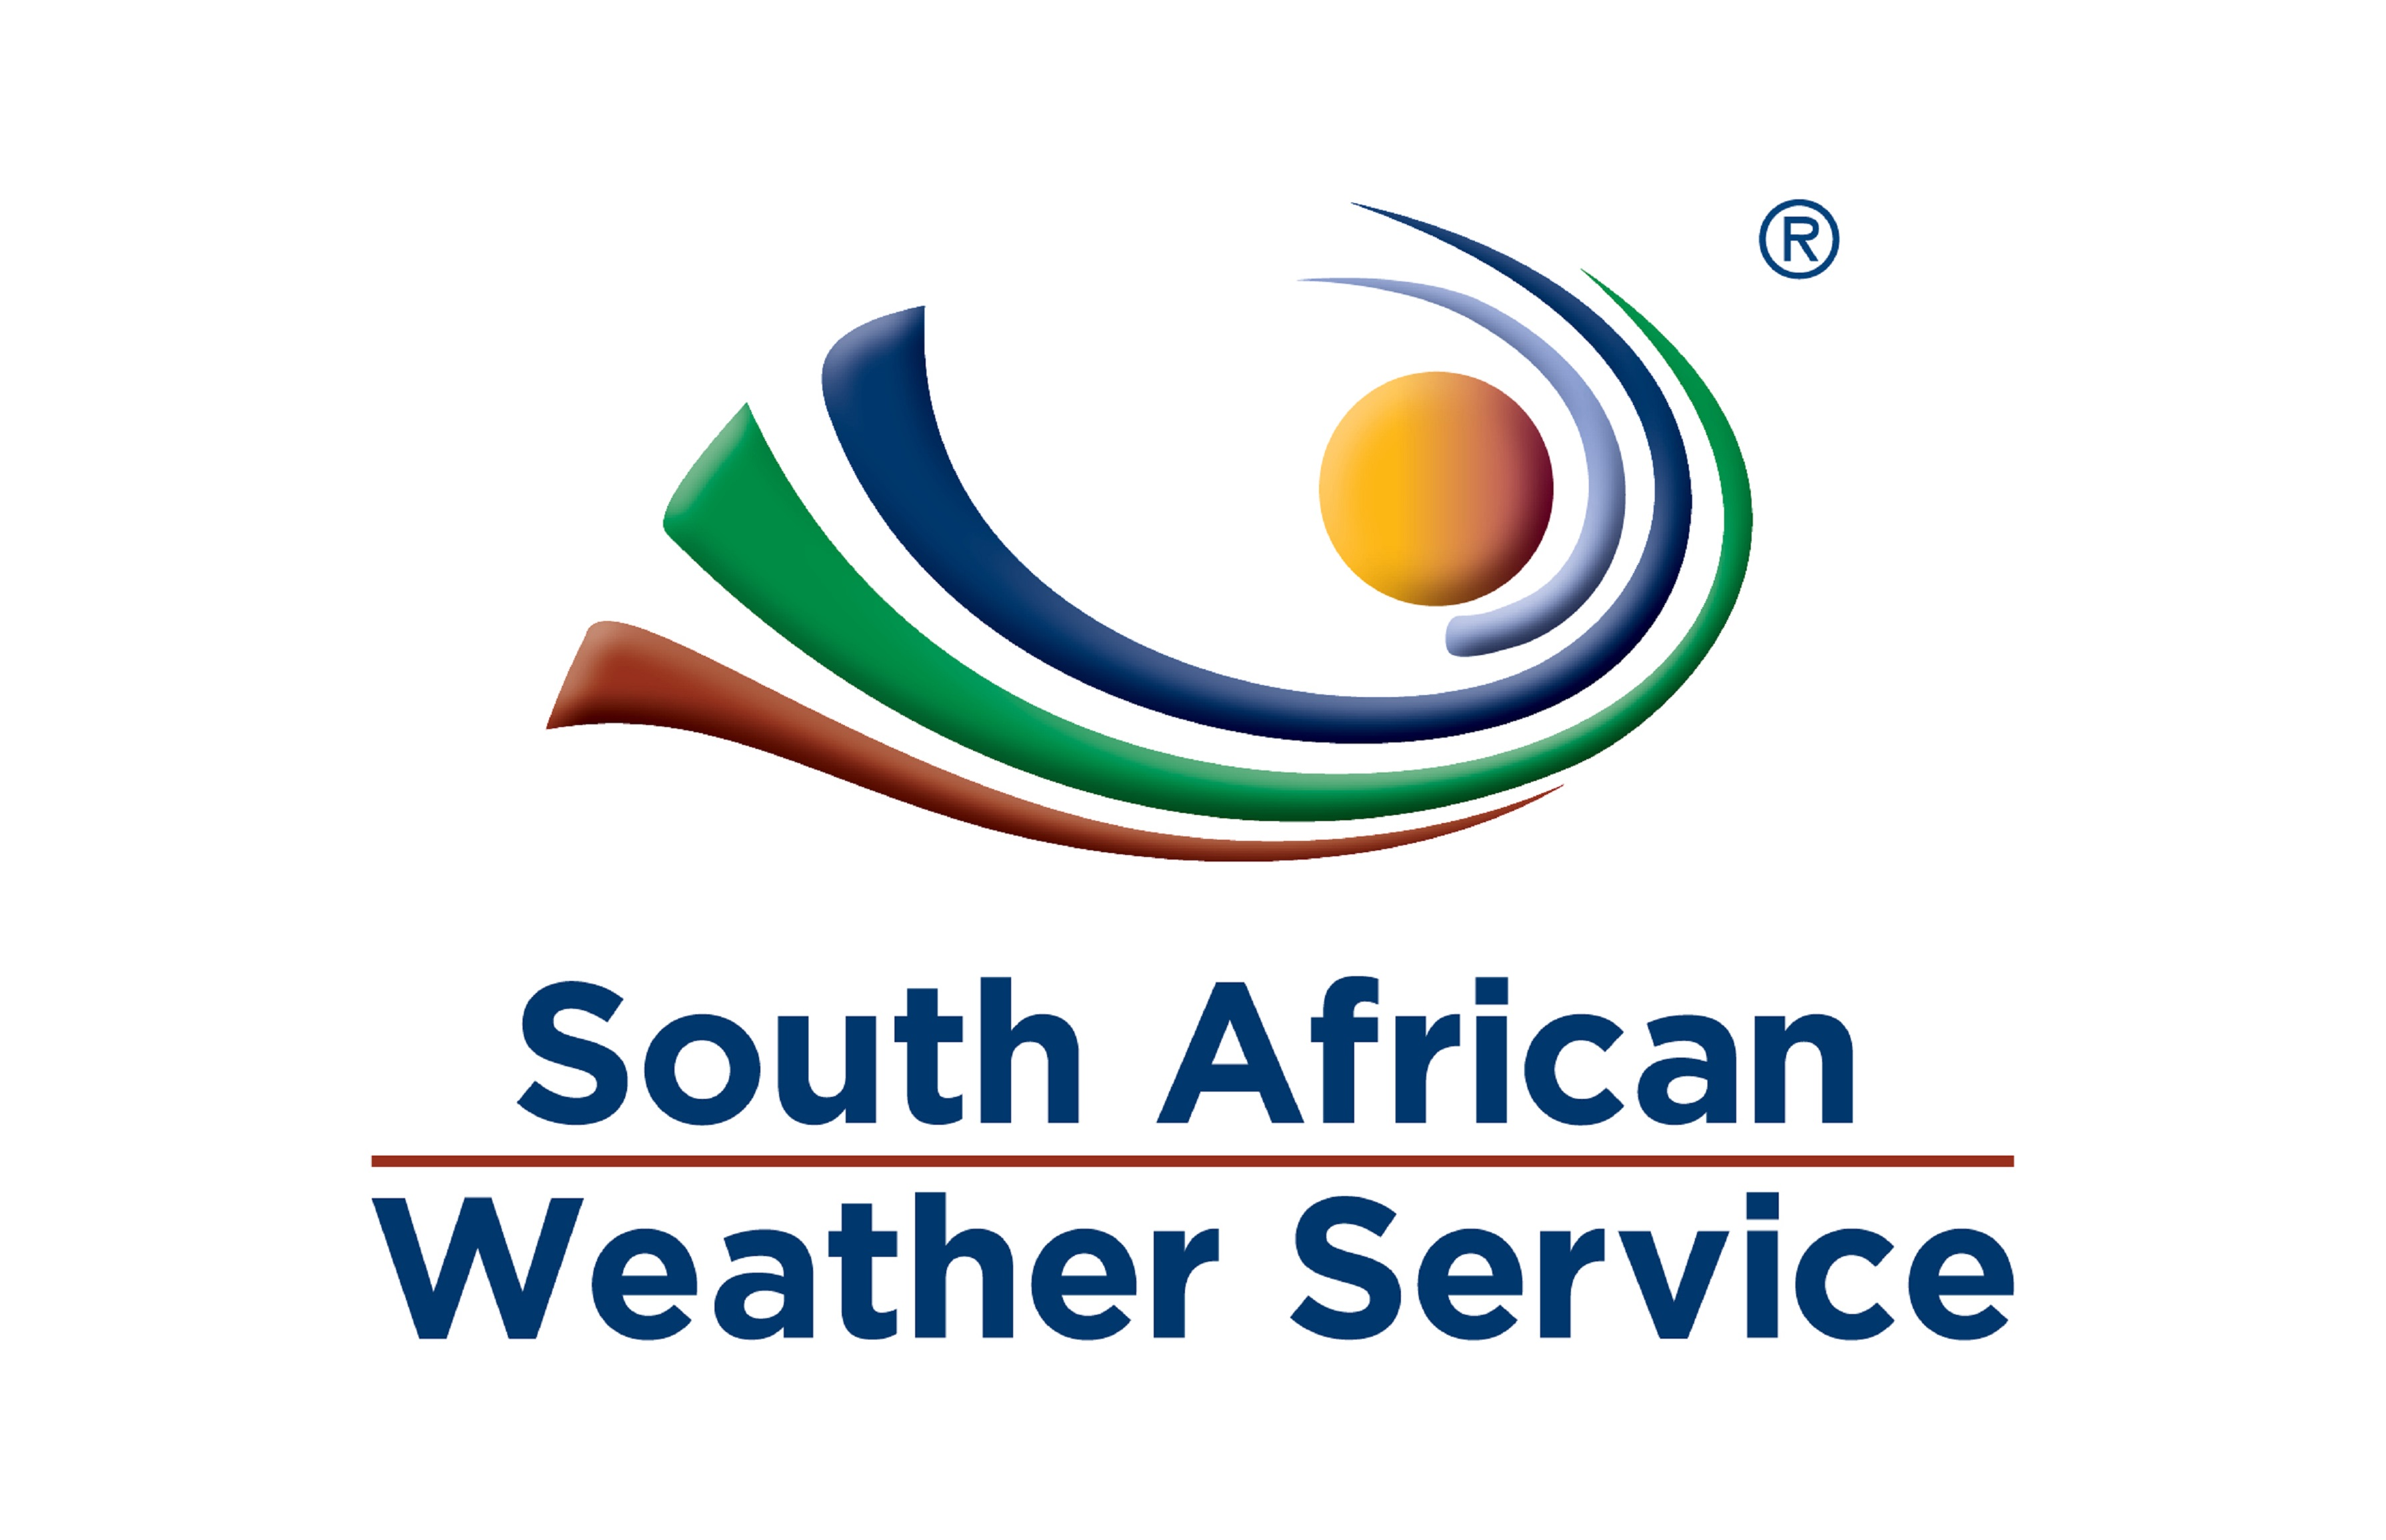 S A Weather Service logo